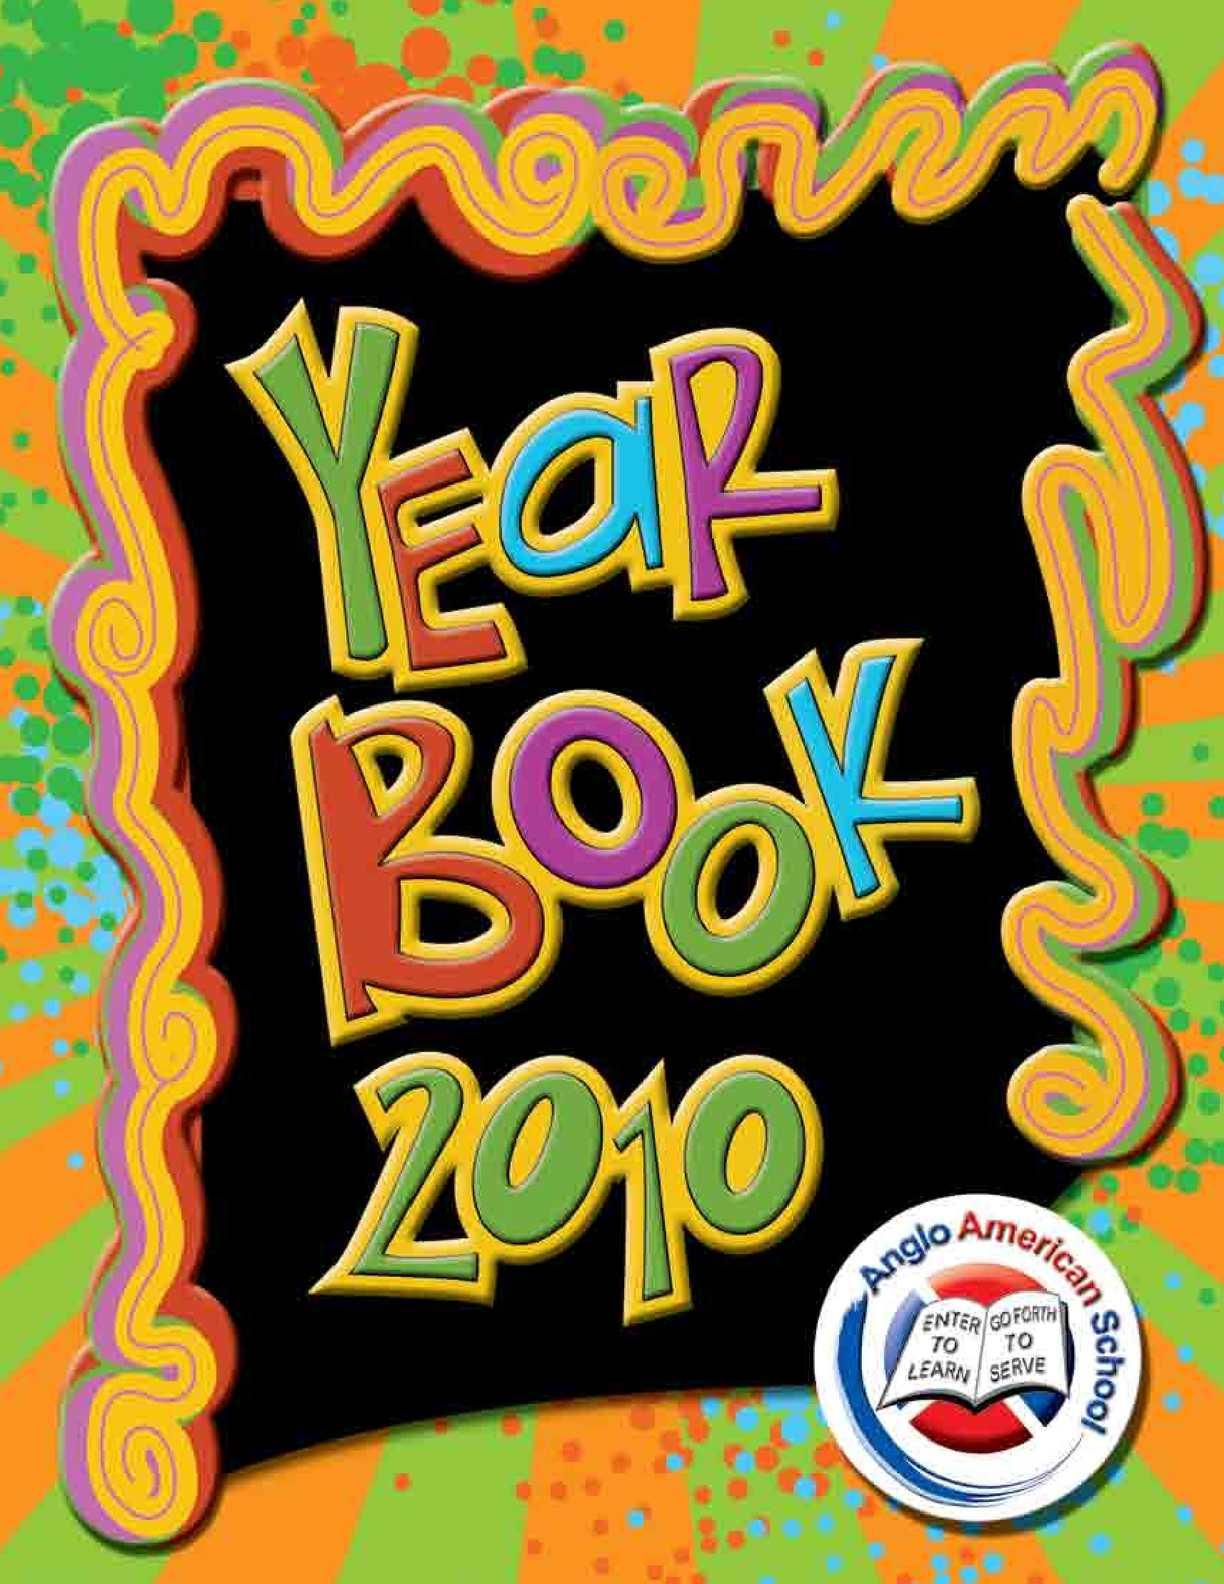 Yearbook Muestra Muestra Calaméo Muestra Yearbook Yearbook Calaméo Calaméo Calaméo Muestra Yearbook lFKJc1T